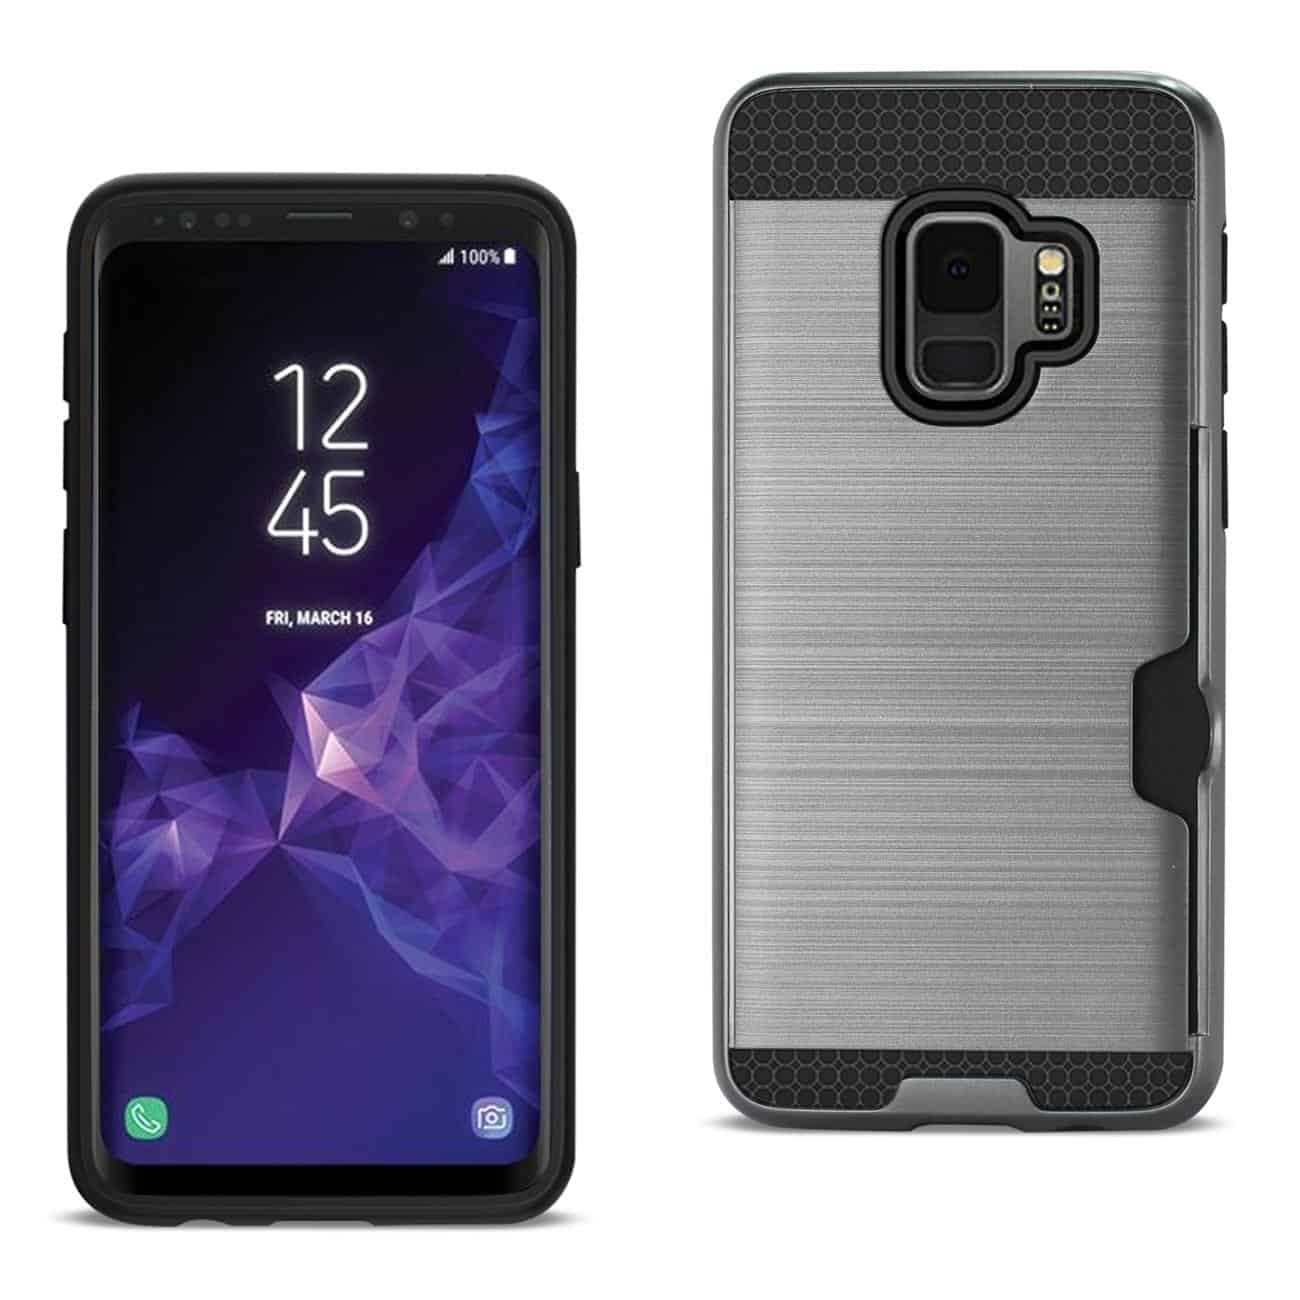 Samsung Galaxy S9 Slim Armor Hybrid Case With Card Holder In Gray